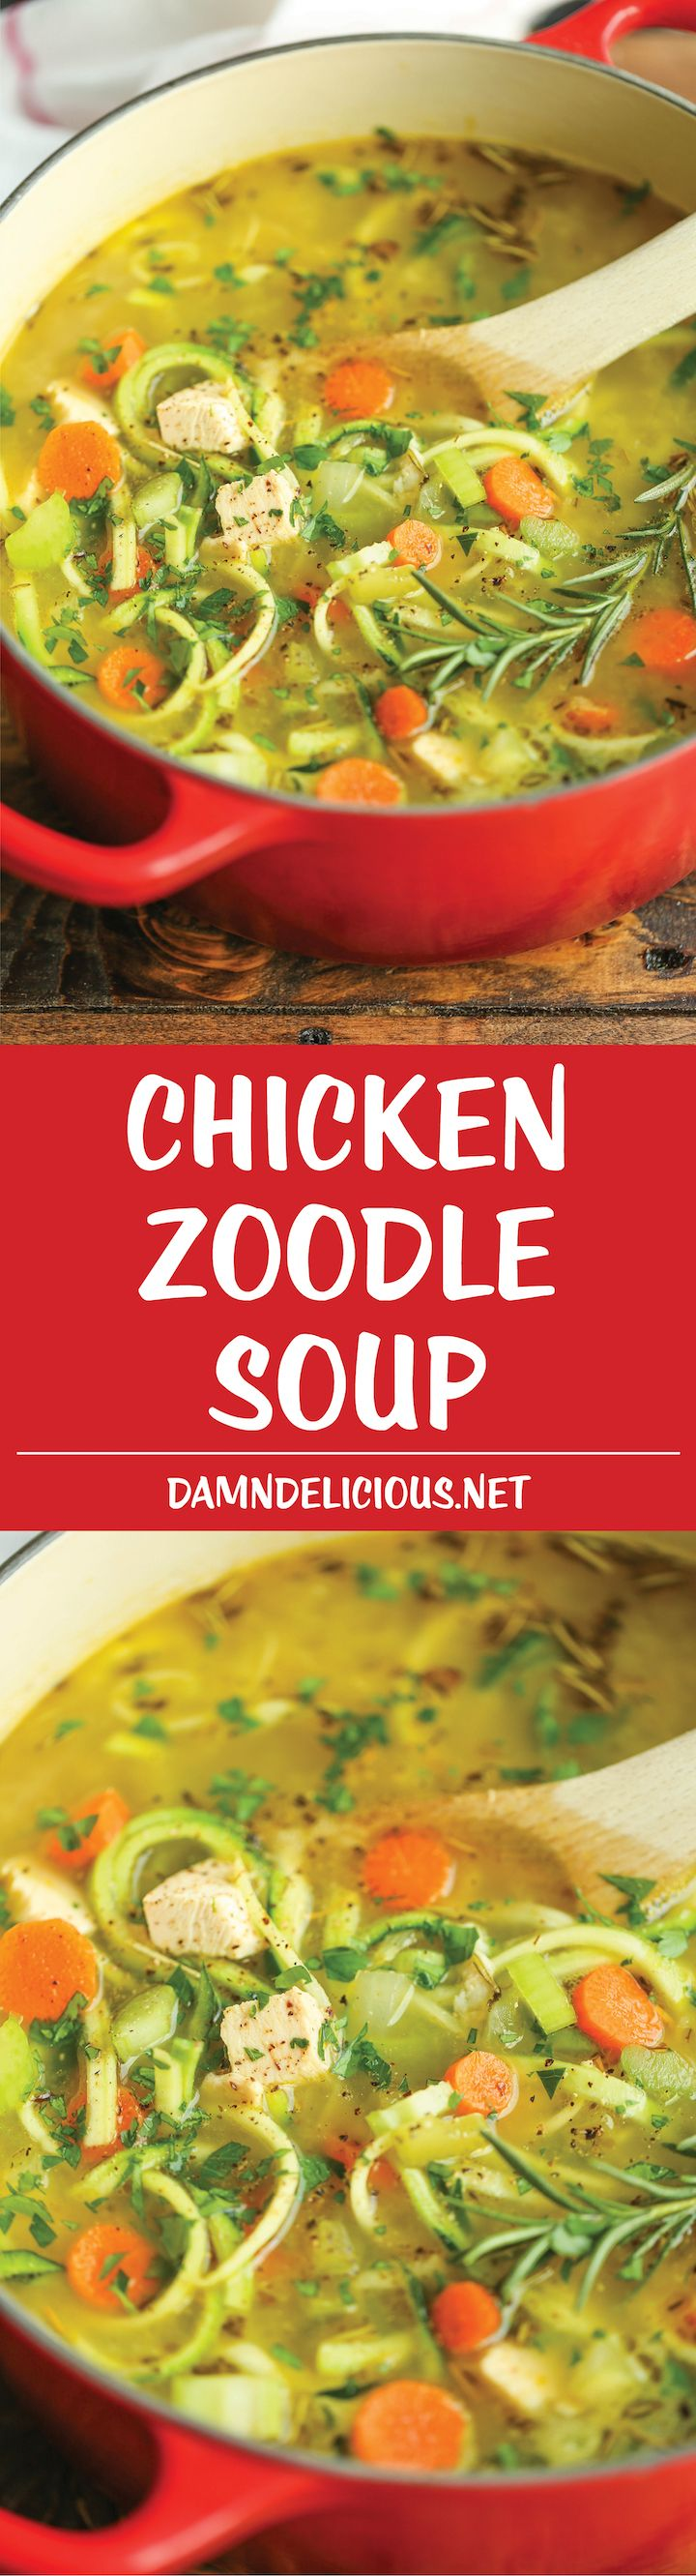 Chicken Zoodle Soup - Just like mom's cozy chicken noodle soup but made with…